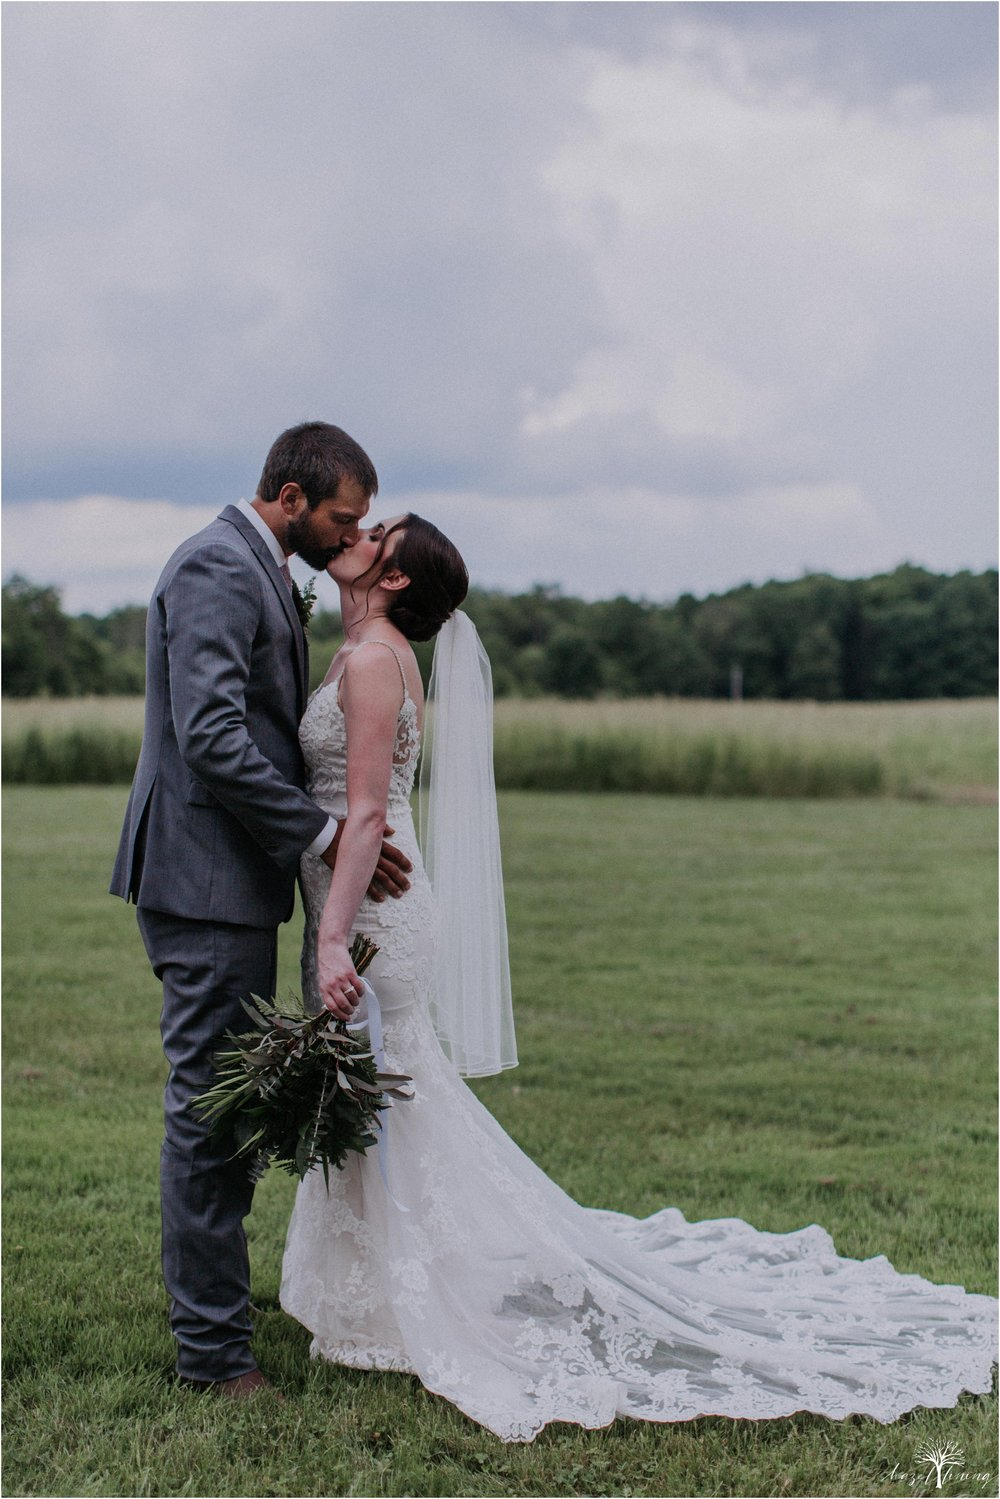 hazel-lining-travel-wedding-elopement-photography-lisa-landon-shoemaker-the-farm-bakery-and-events-bucks-county-quakertown-pennsylvania-summer-country-outdoor-farm-wedding_0086.jpg